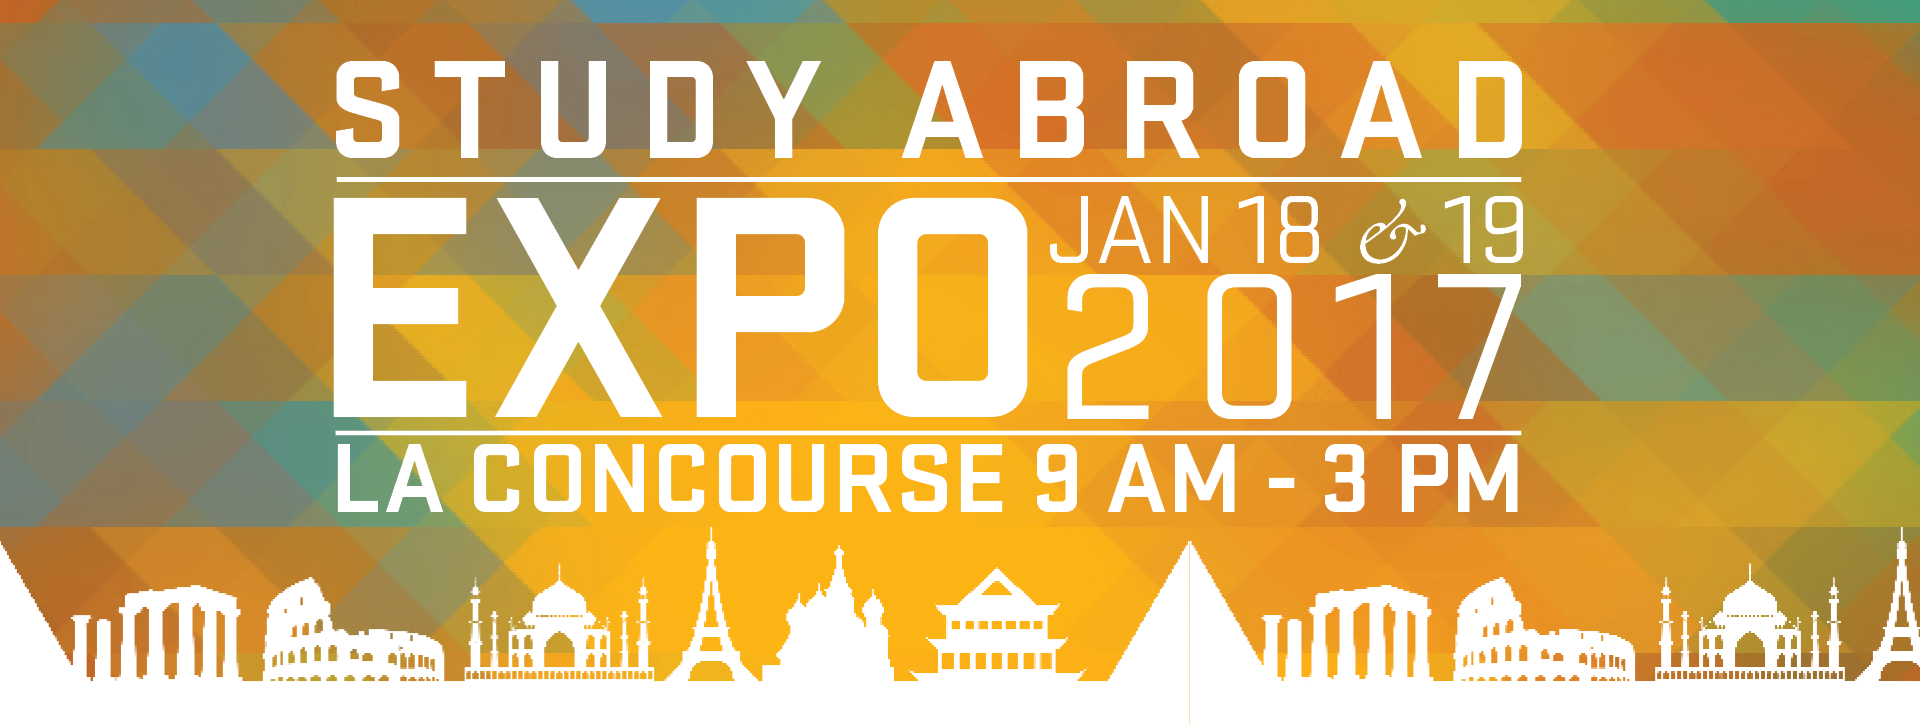 Study Abroad Expo 2017